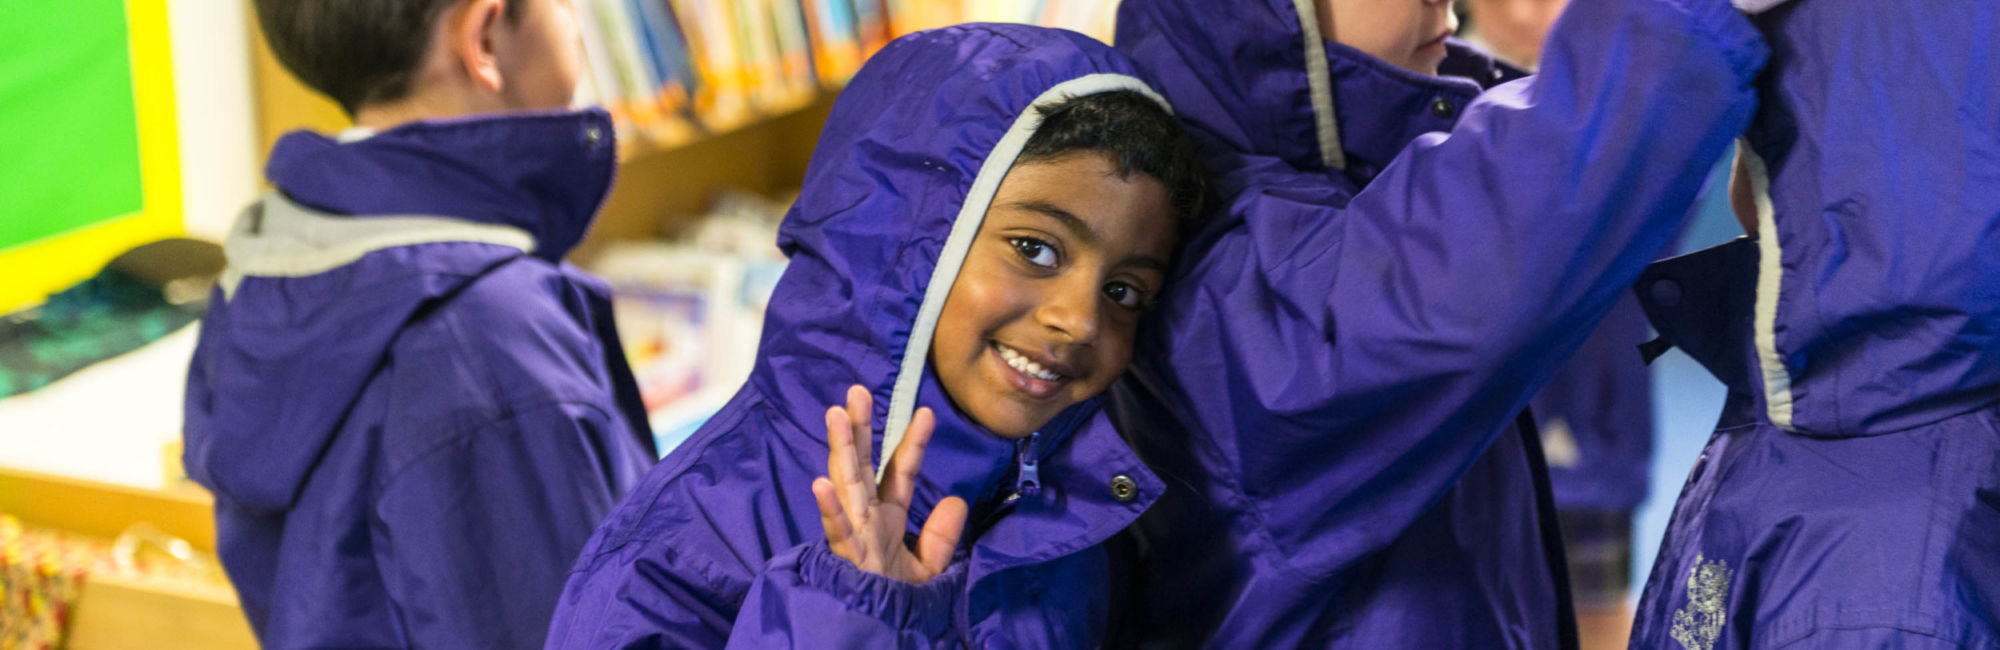 wycliffe nursery pupils smiling and putting on trenchcoats